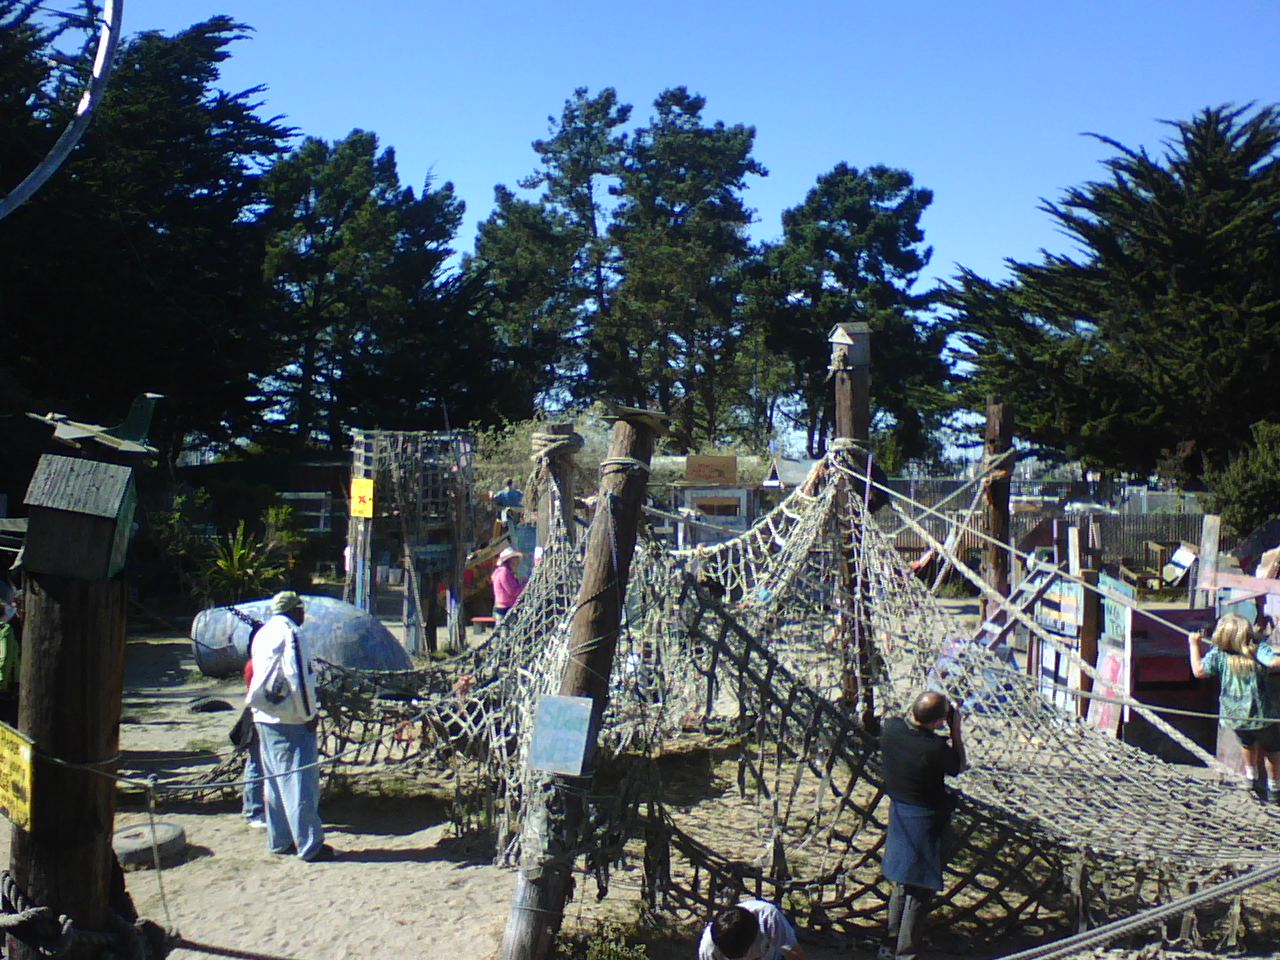 Mommydaddies Adventure Playground Berkeley Marina